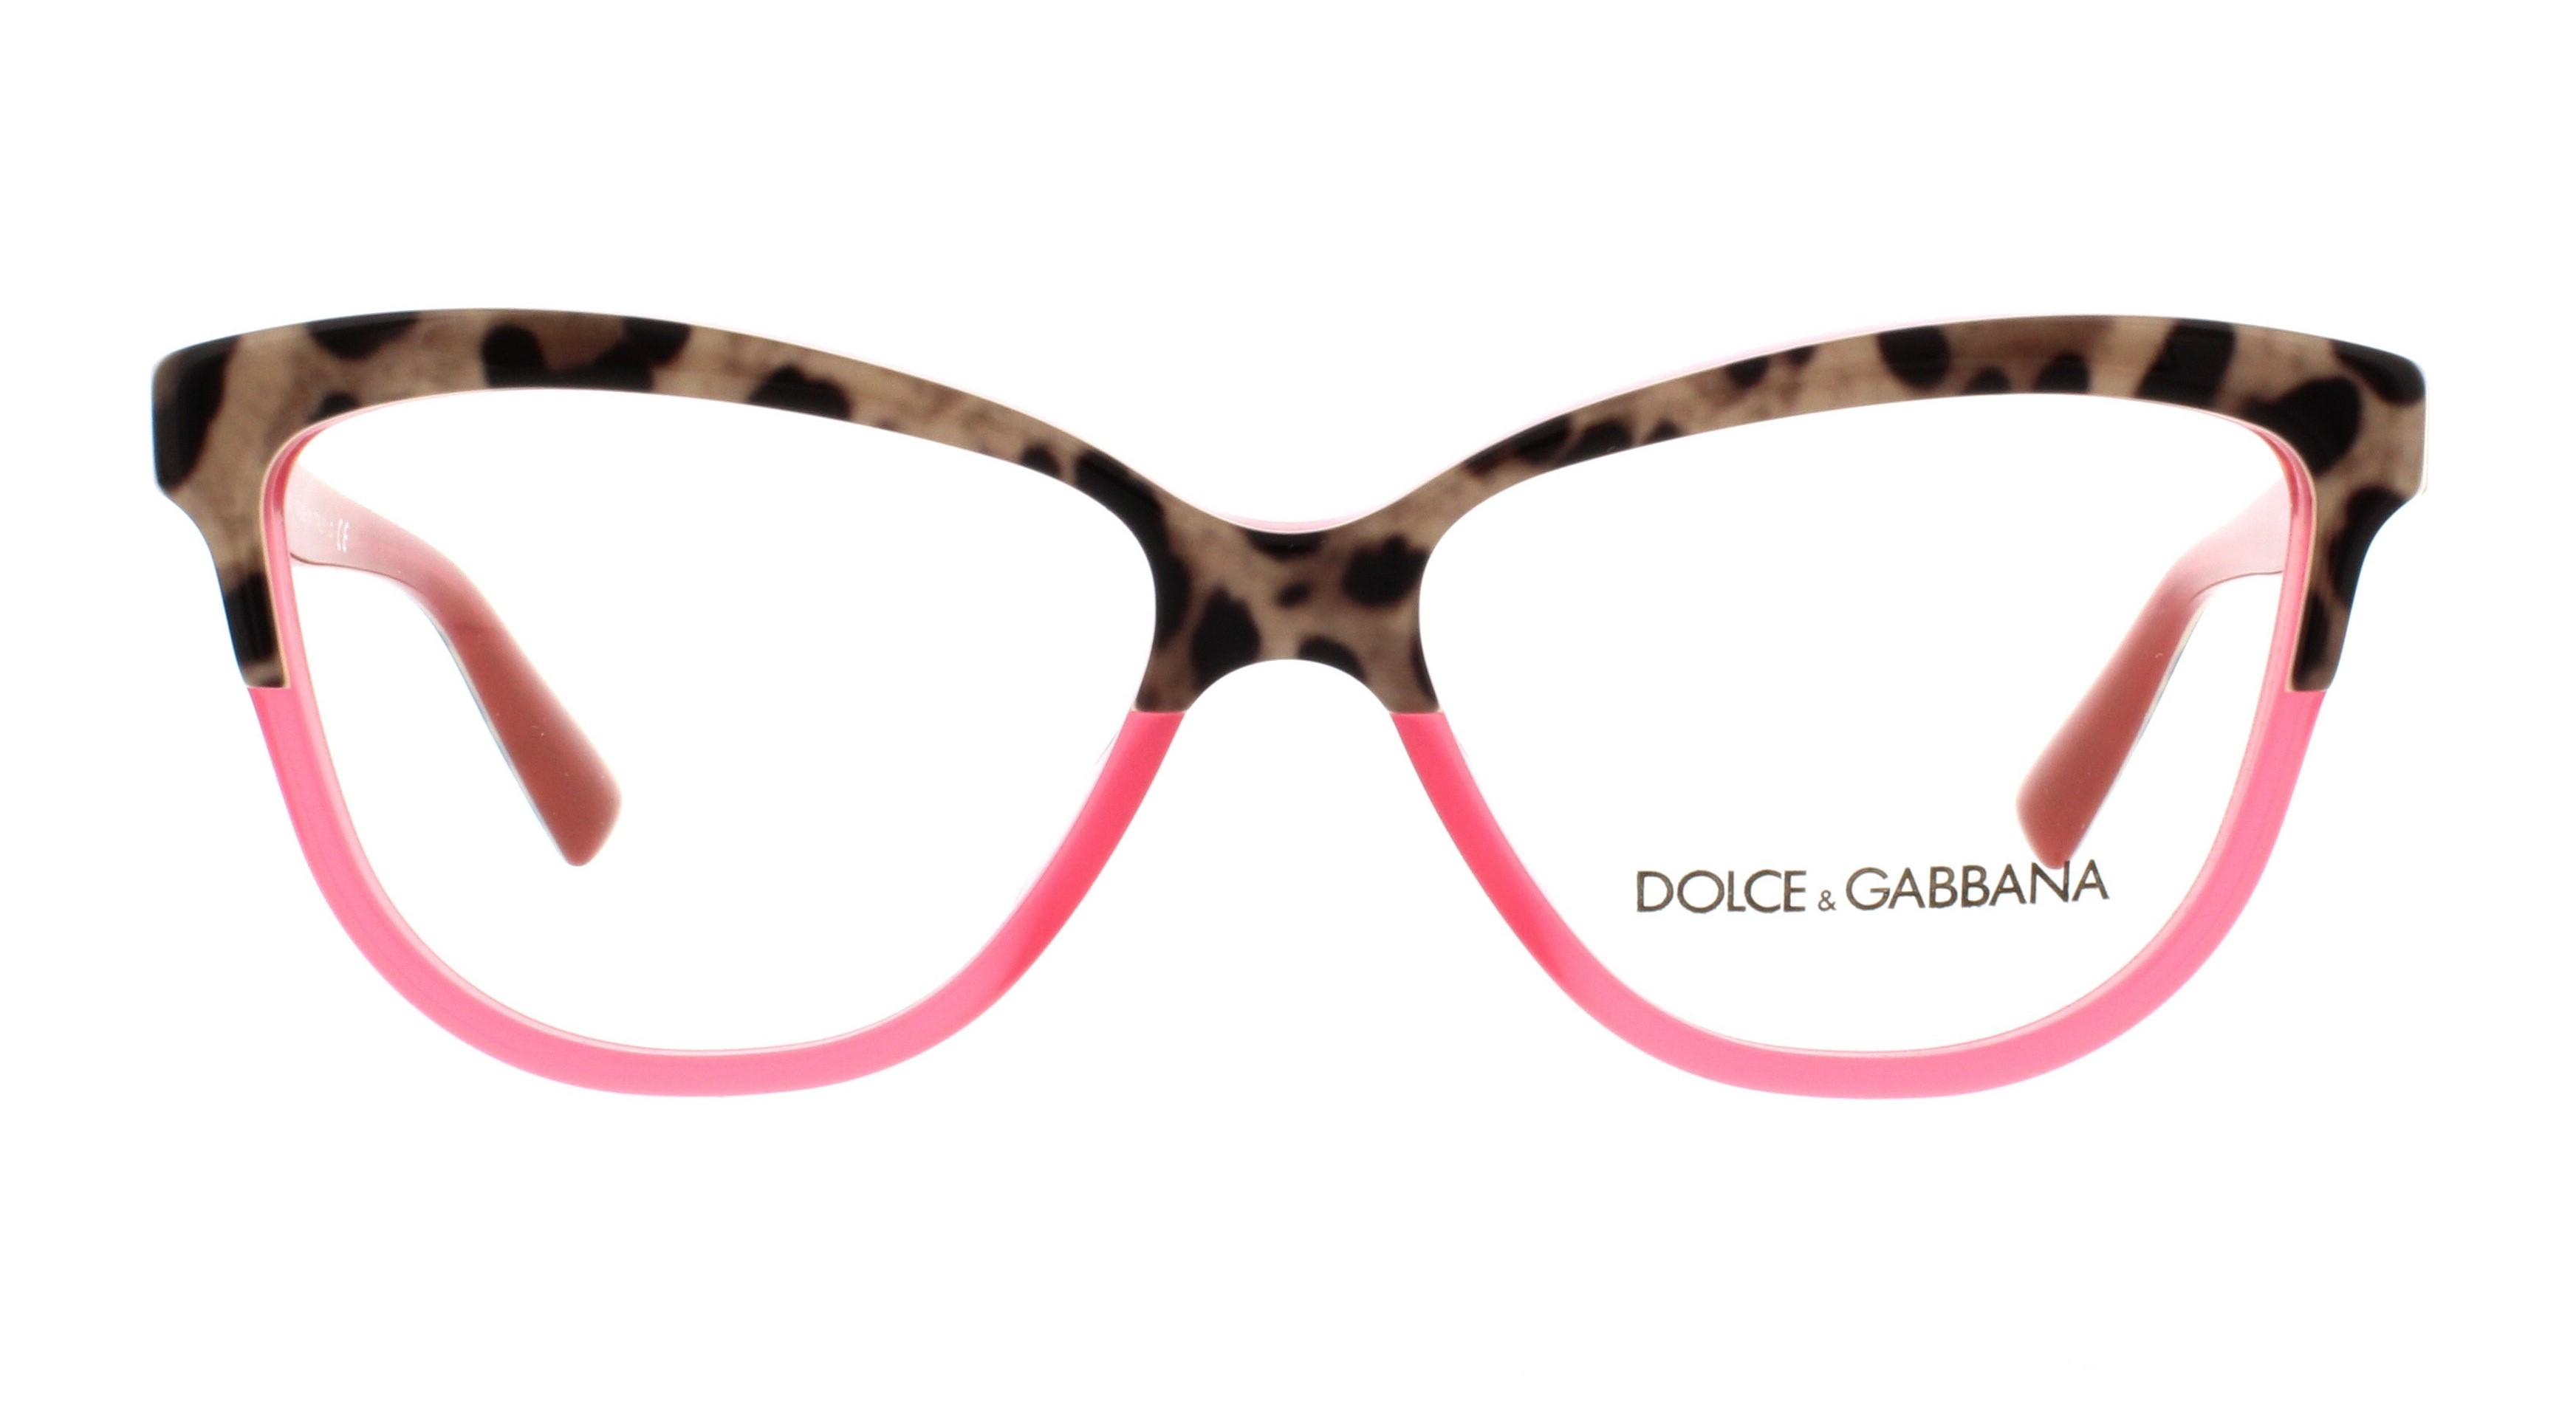 b8414adac24c DOLCE   GABBANA Eyeglasses DG3229 2949 Animal On Raspberry 54MM -  Walmart.com